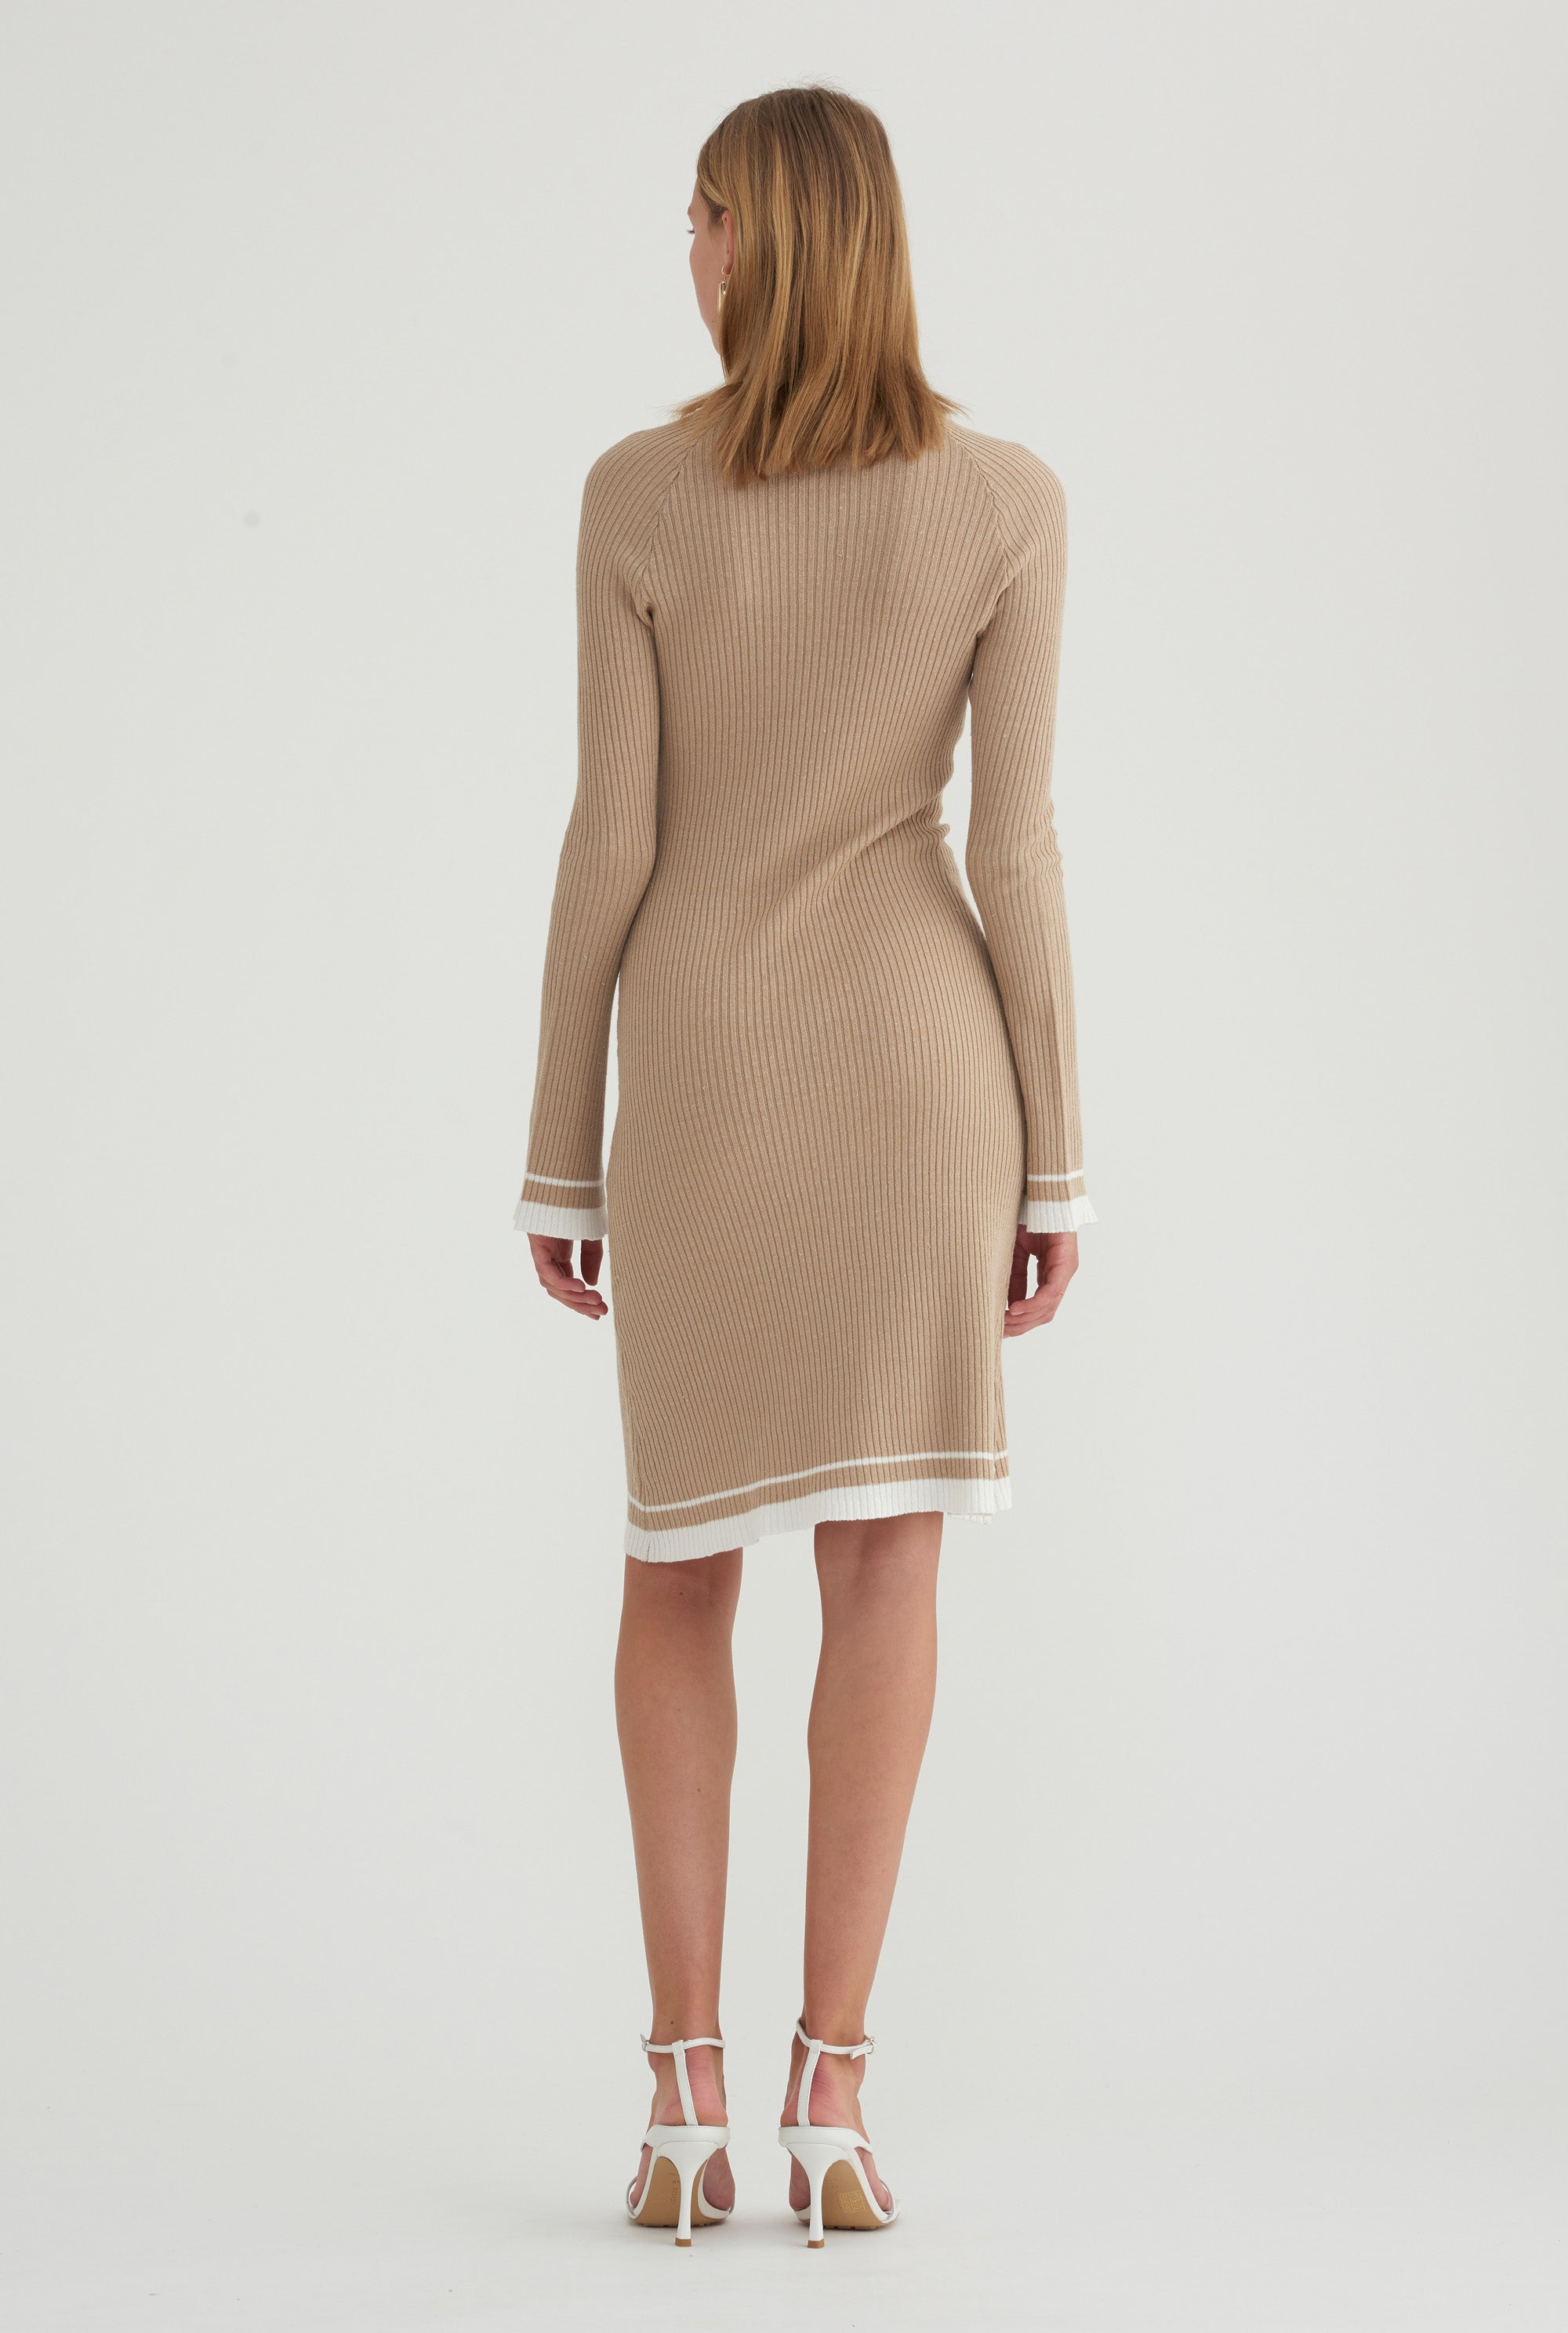 Long Sleeve Knit Dress - Taupe